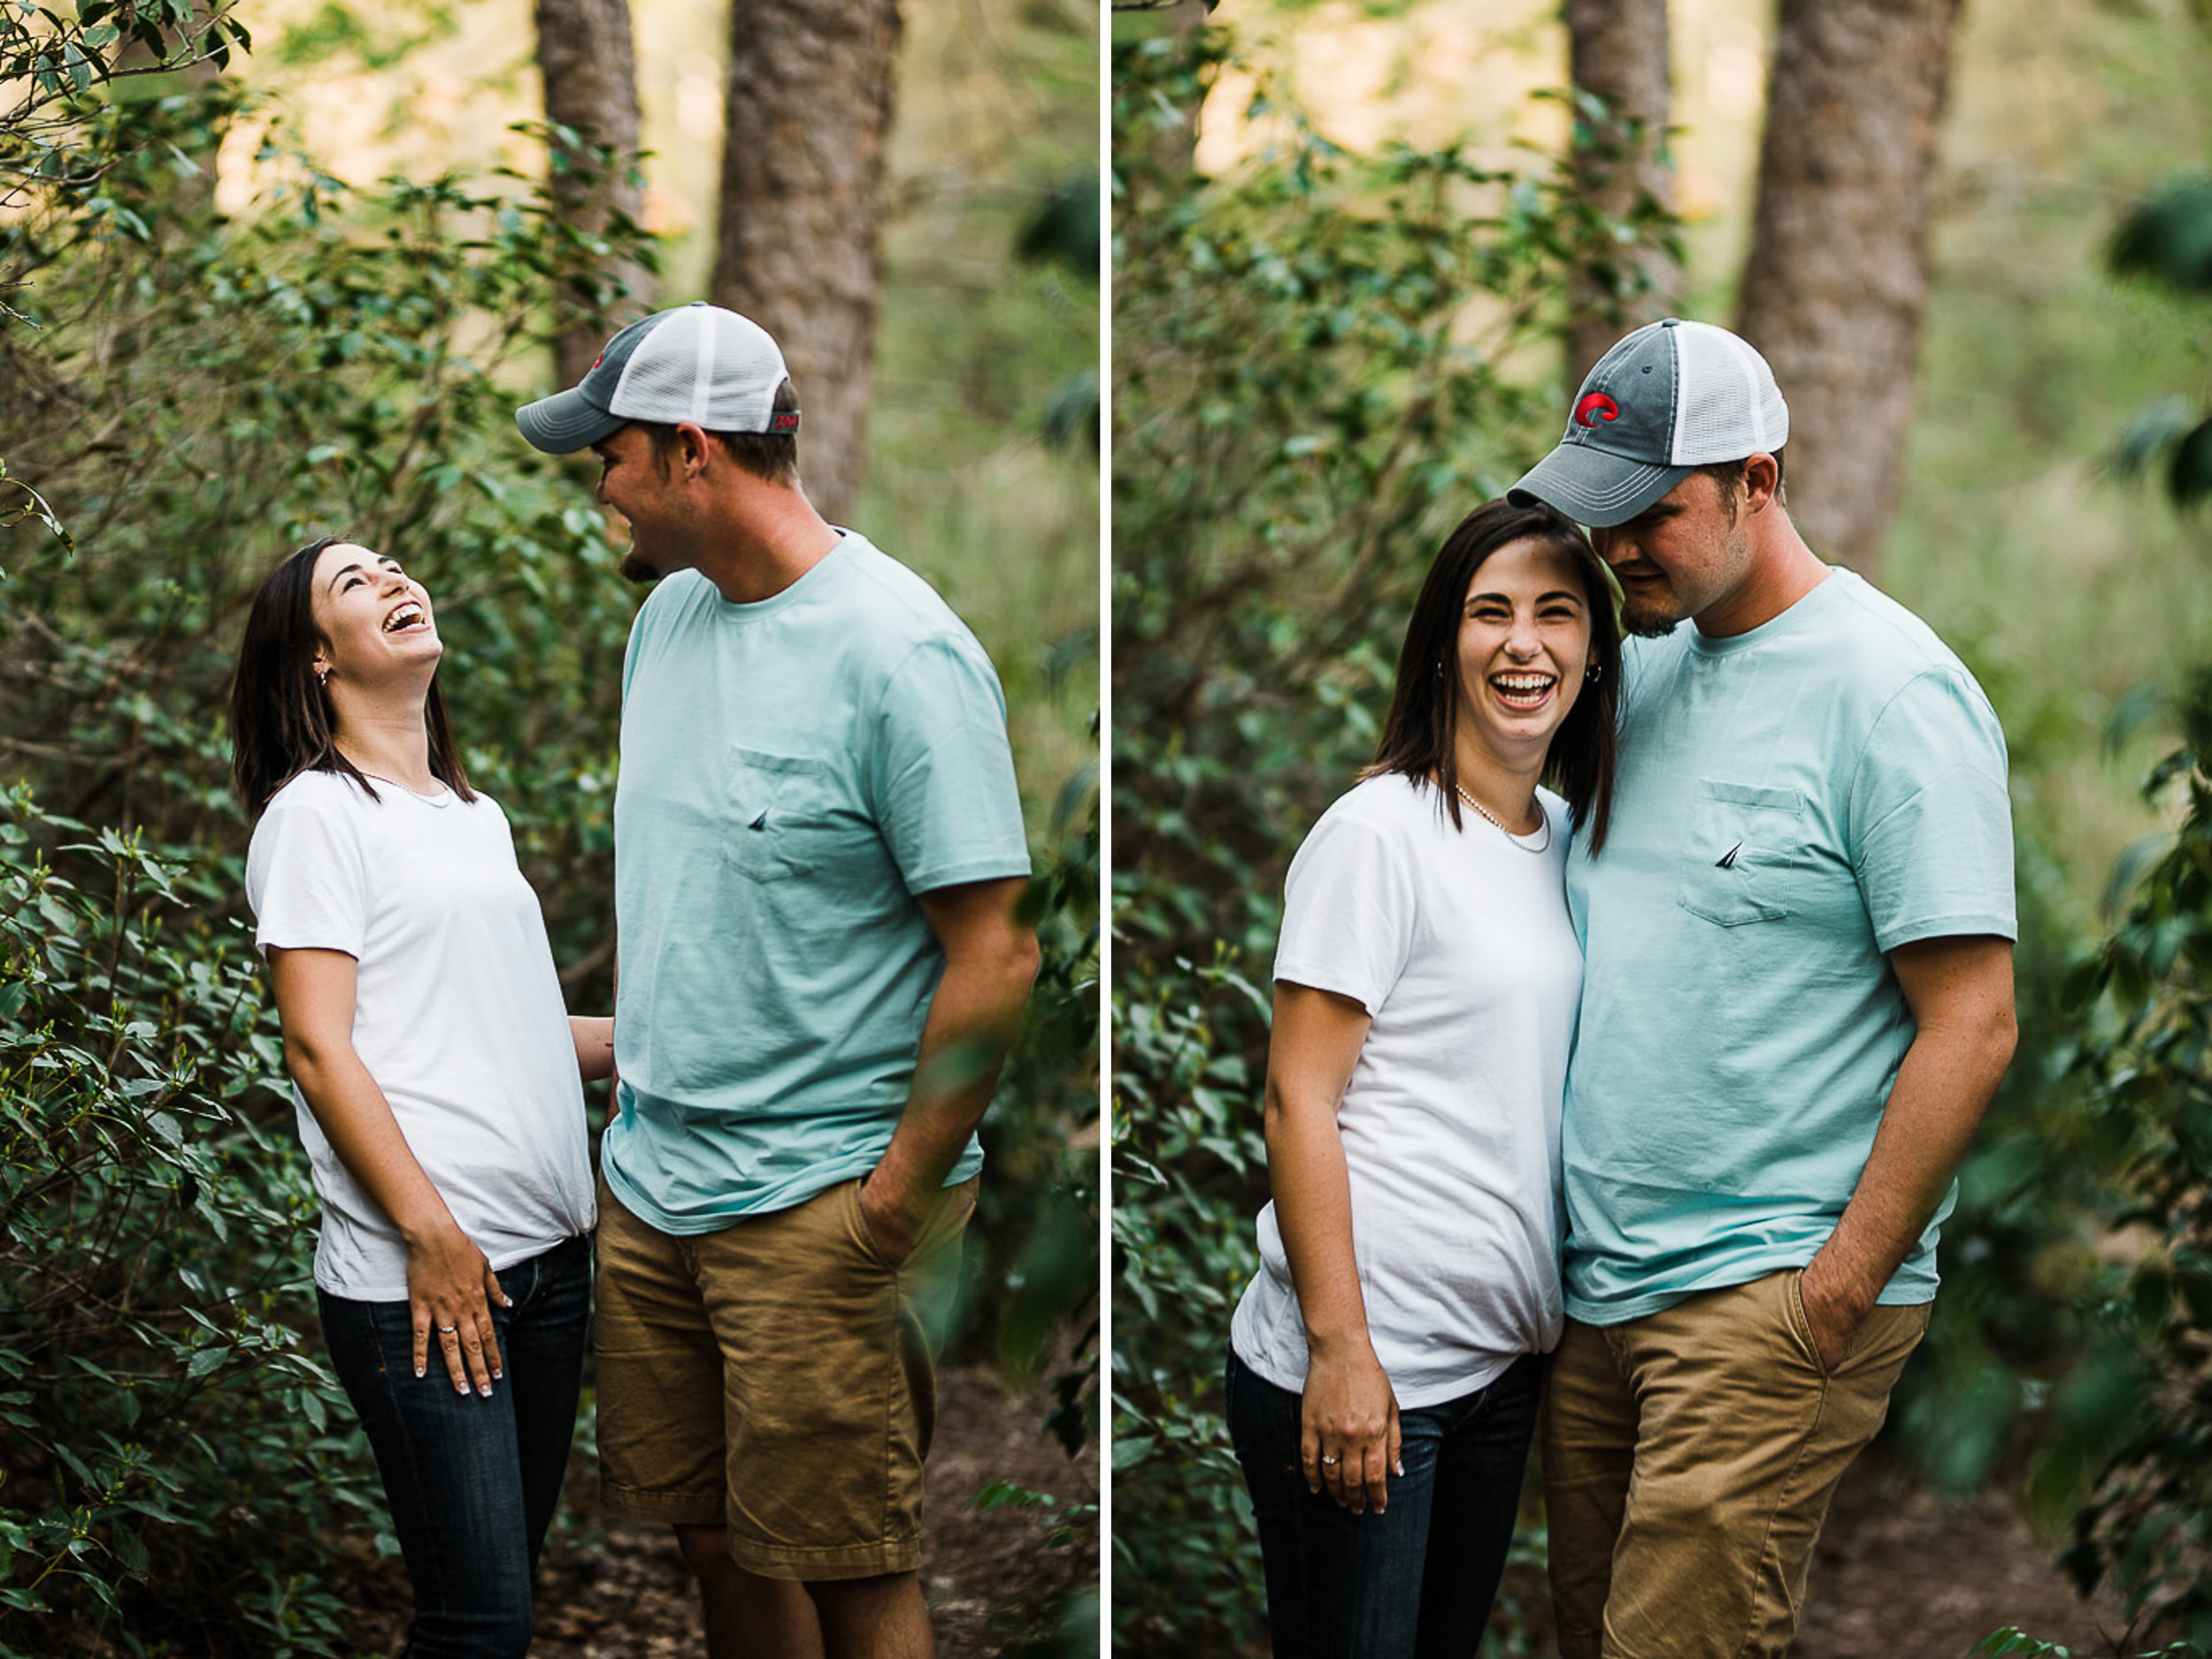 Engagement Portraits, Mountain, Spring, Outdoors, South Carolina, Wedding Photographer 07.jpg